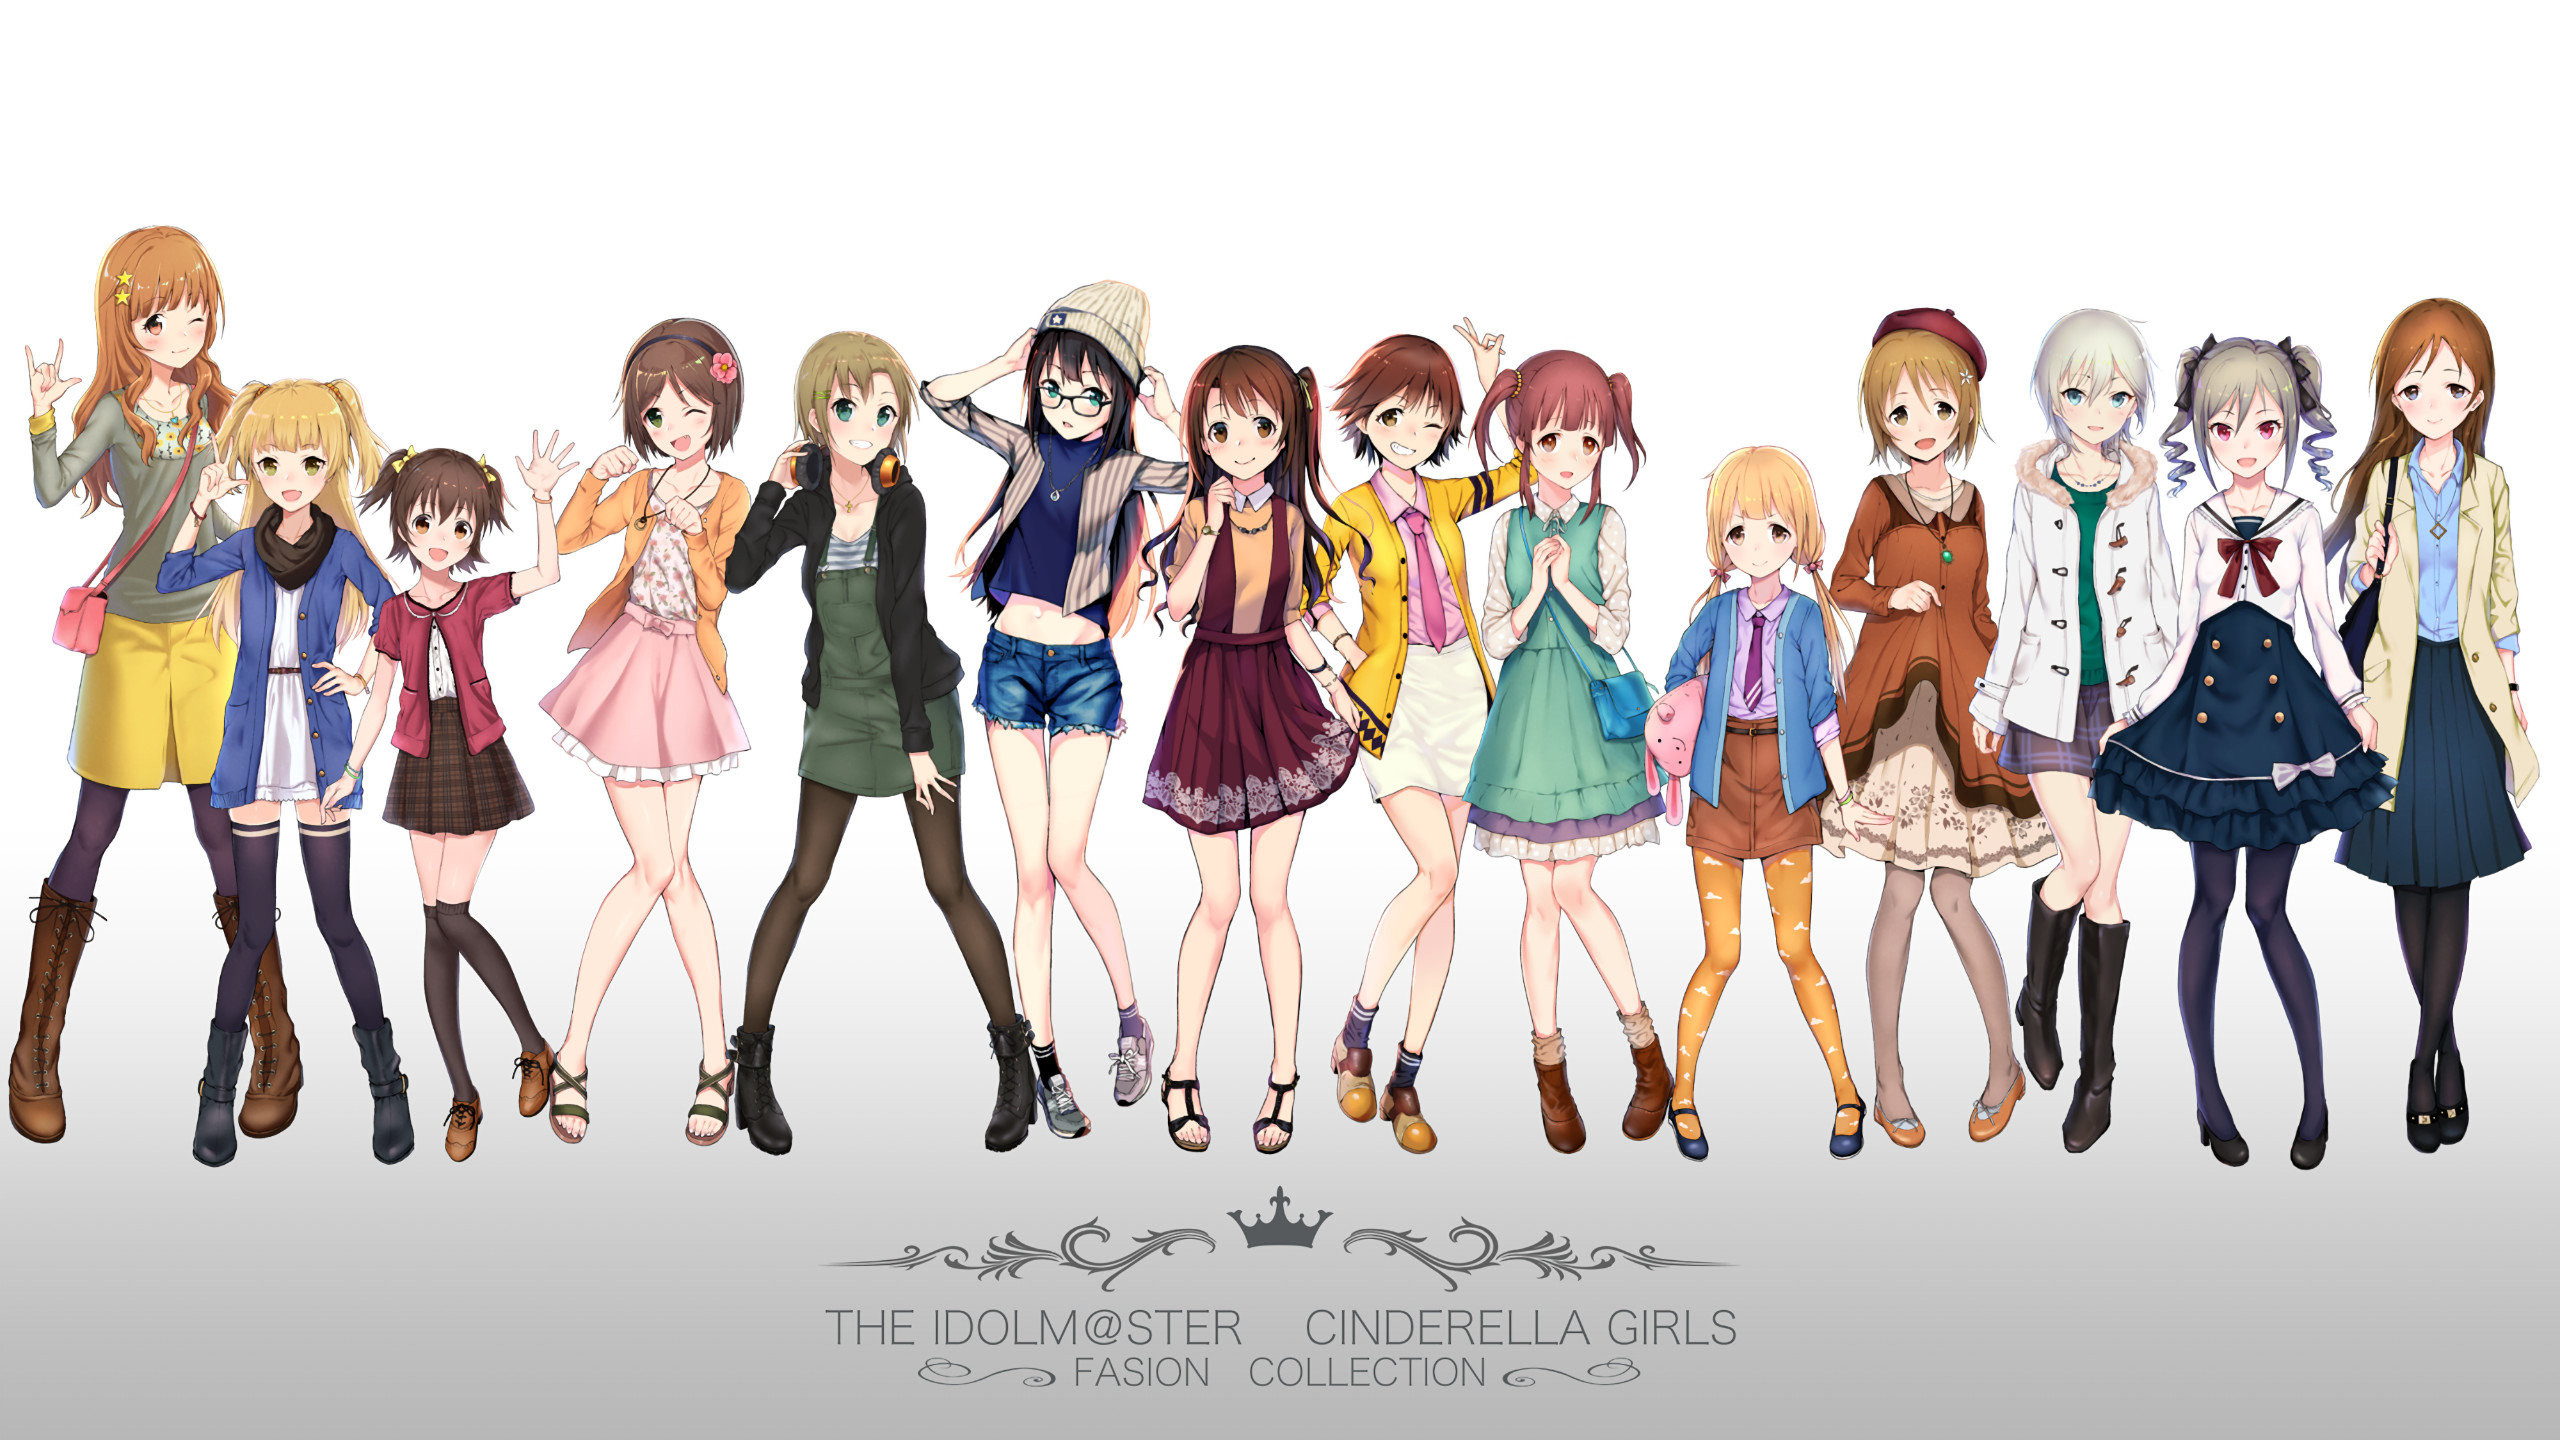 Download hd 2560x1440 IDOLM@STER Cinderella Girls desktop background ID:446750 for free